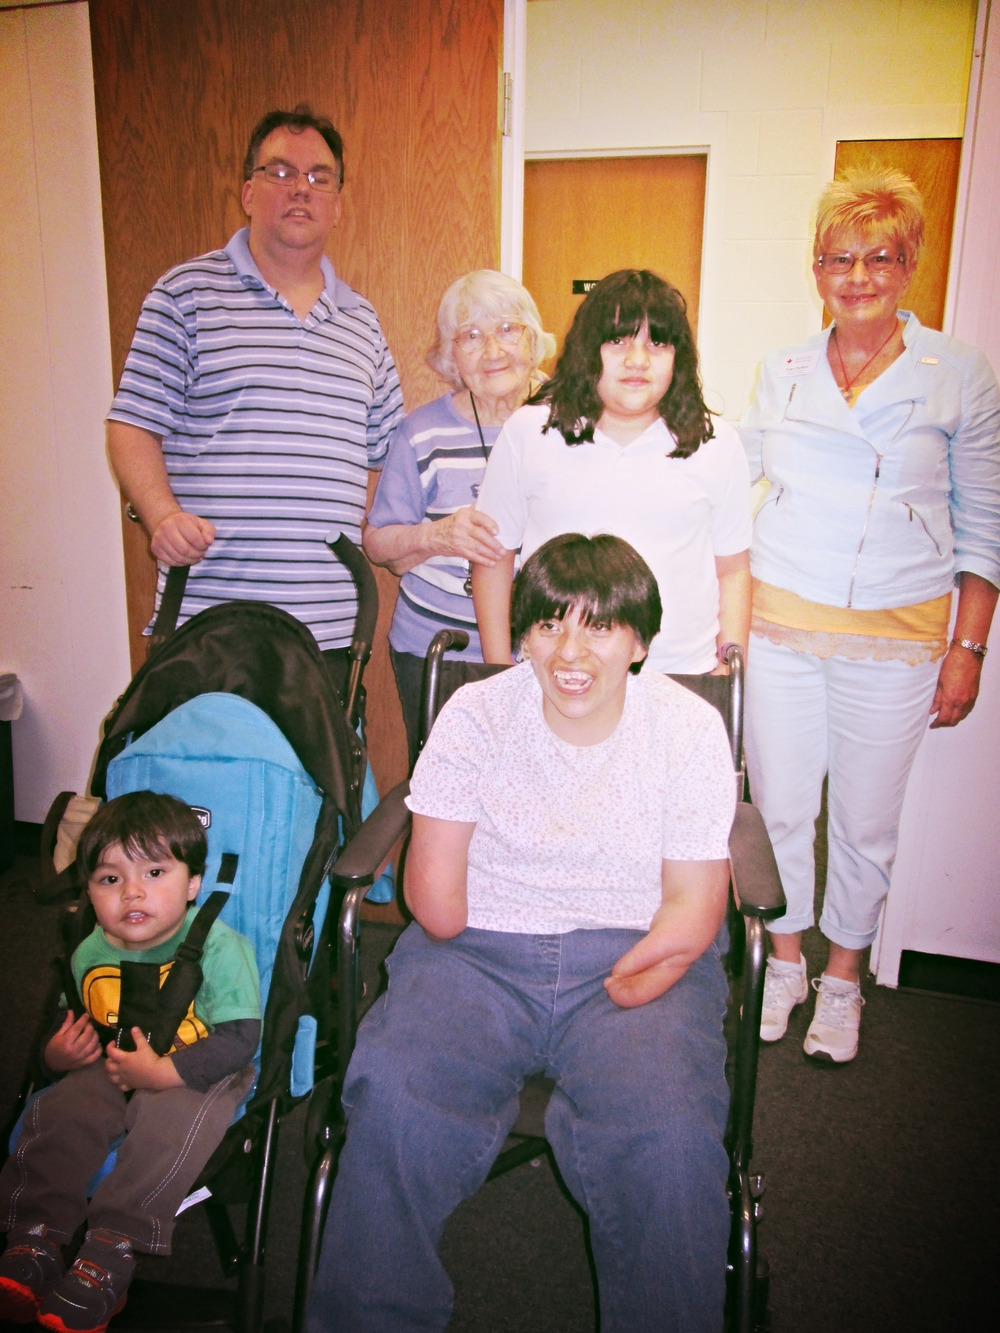 Mechi and her family along with Red Cross caseworker, Fran Dutton